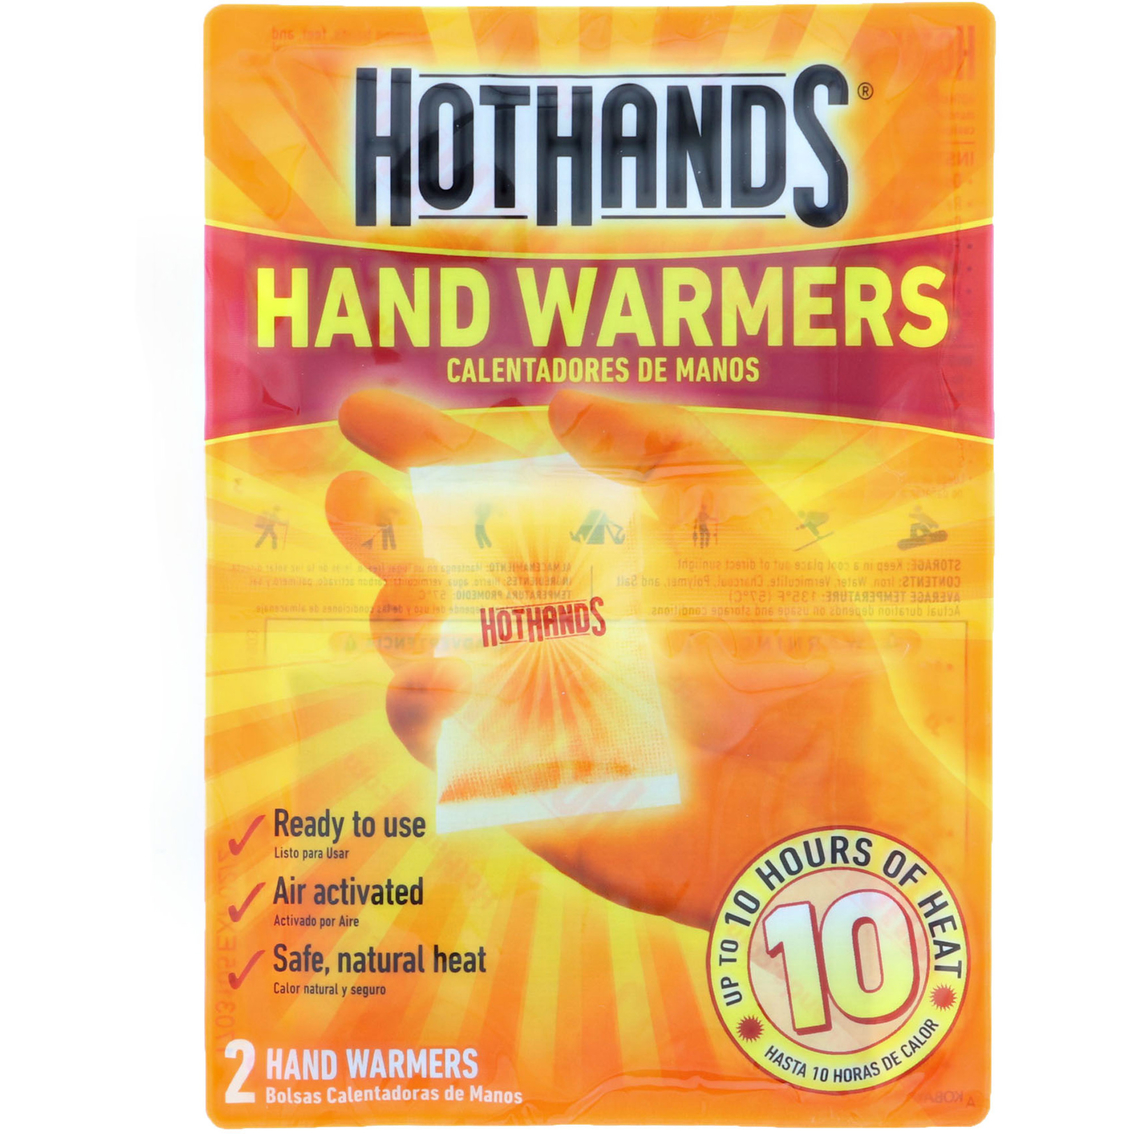 Brigade Qm Hothands Hand Warmers Gloves Military Shop The Exchange